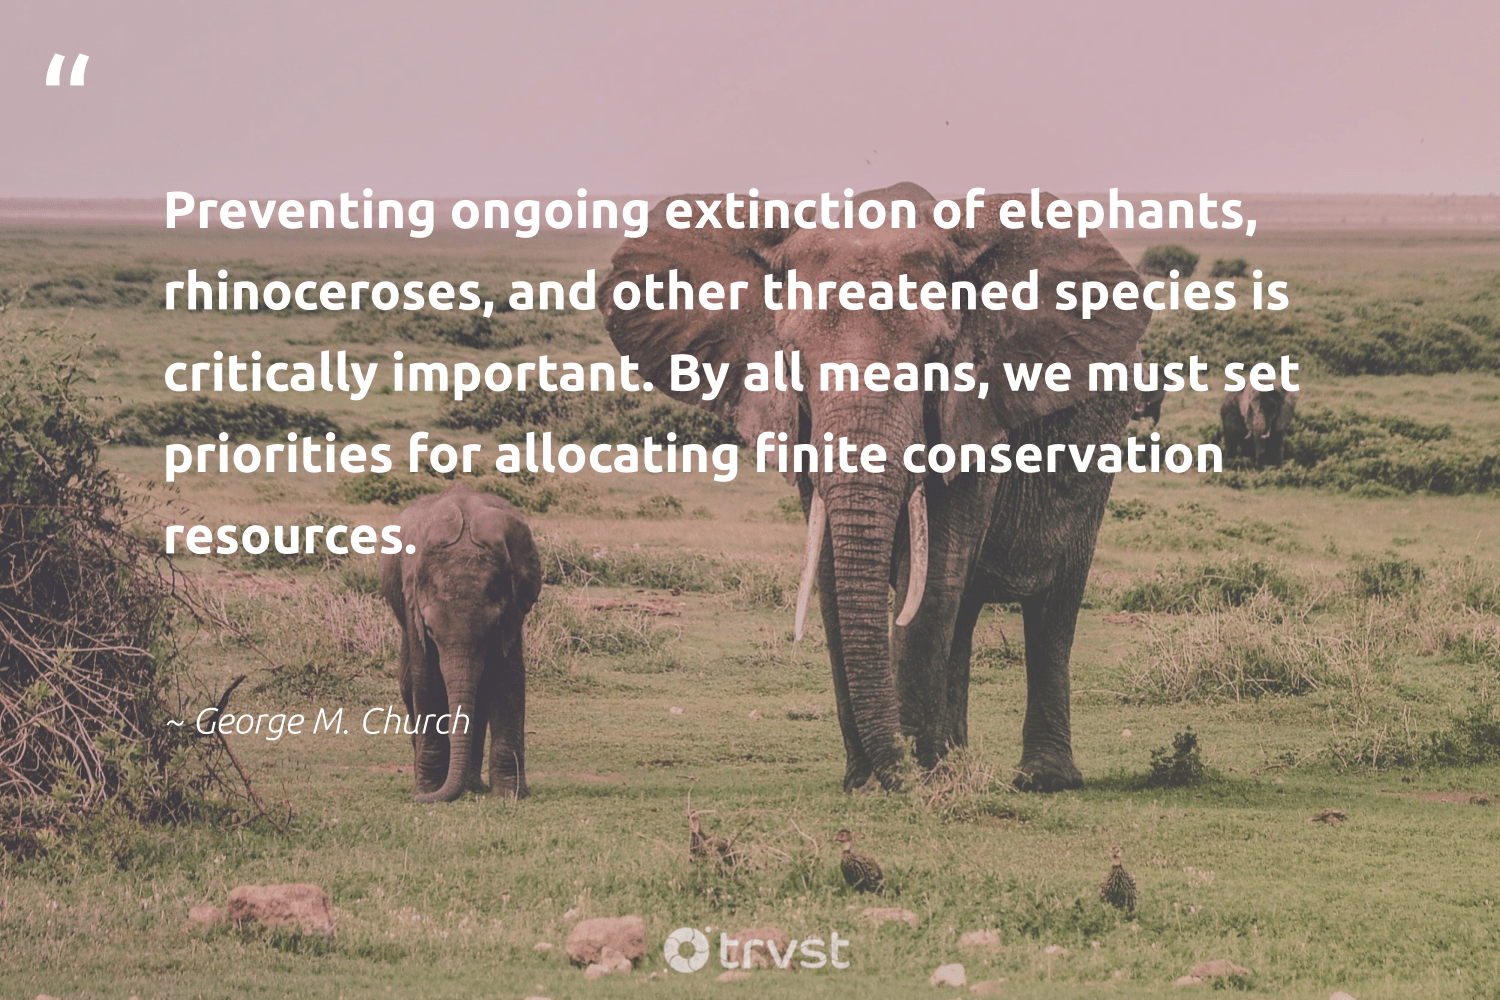 """""""Preventing ongoing extinction of elephants, rhinoceroses, and other threatened species is critically important. By all means, we must set priorities for allocating finite conservation resources.""""  - George M. Church #trvst #quotes #conservation #extinction #elephants #earth #elephantlove #volunteer #planetearthfirst #nature #explore #sustainableliving"""